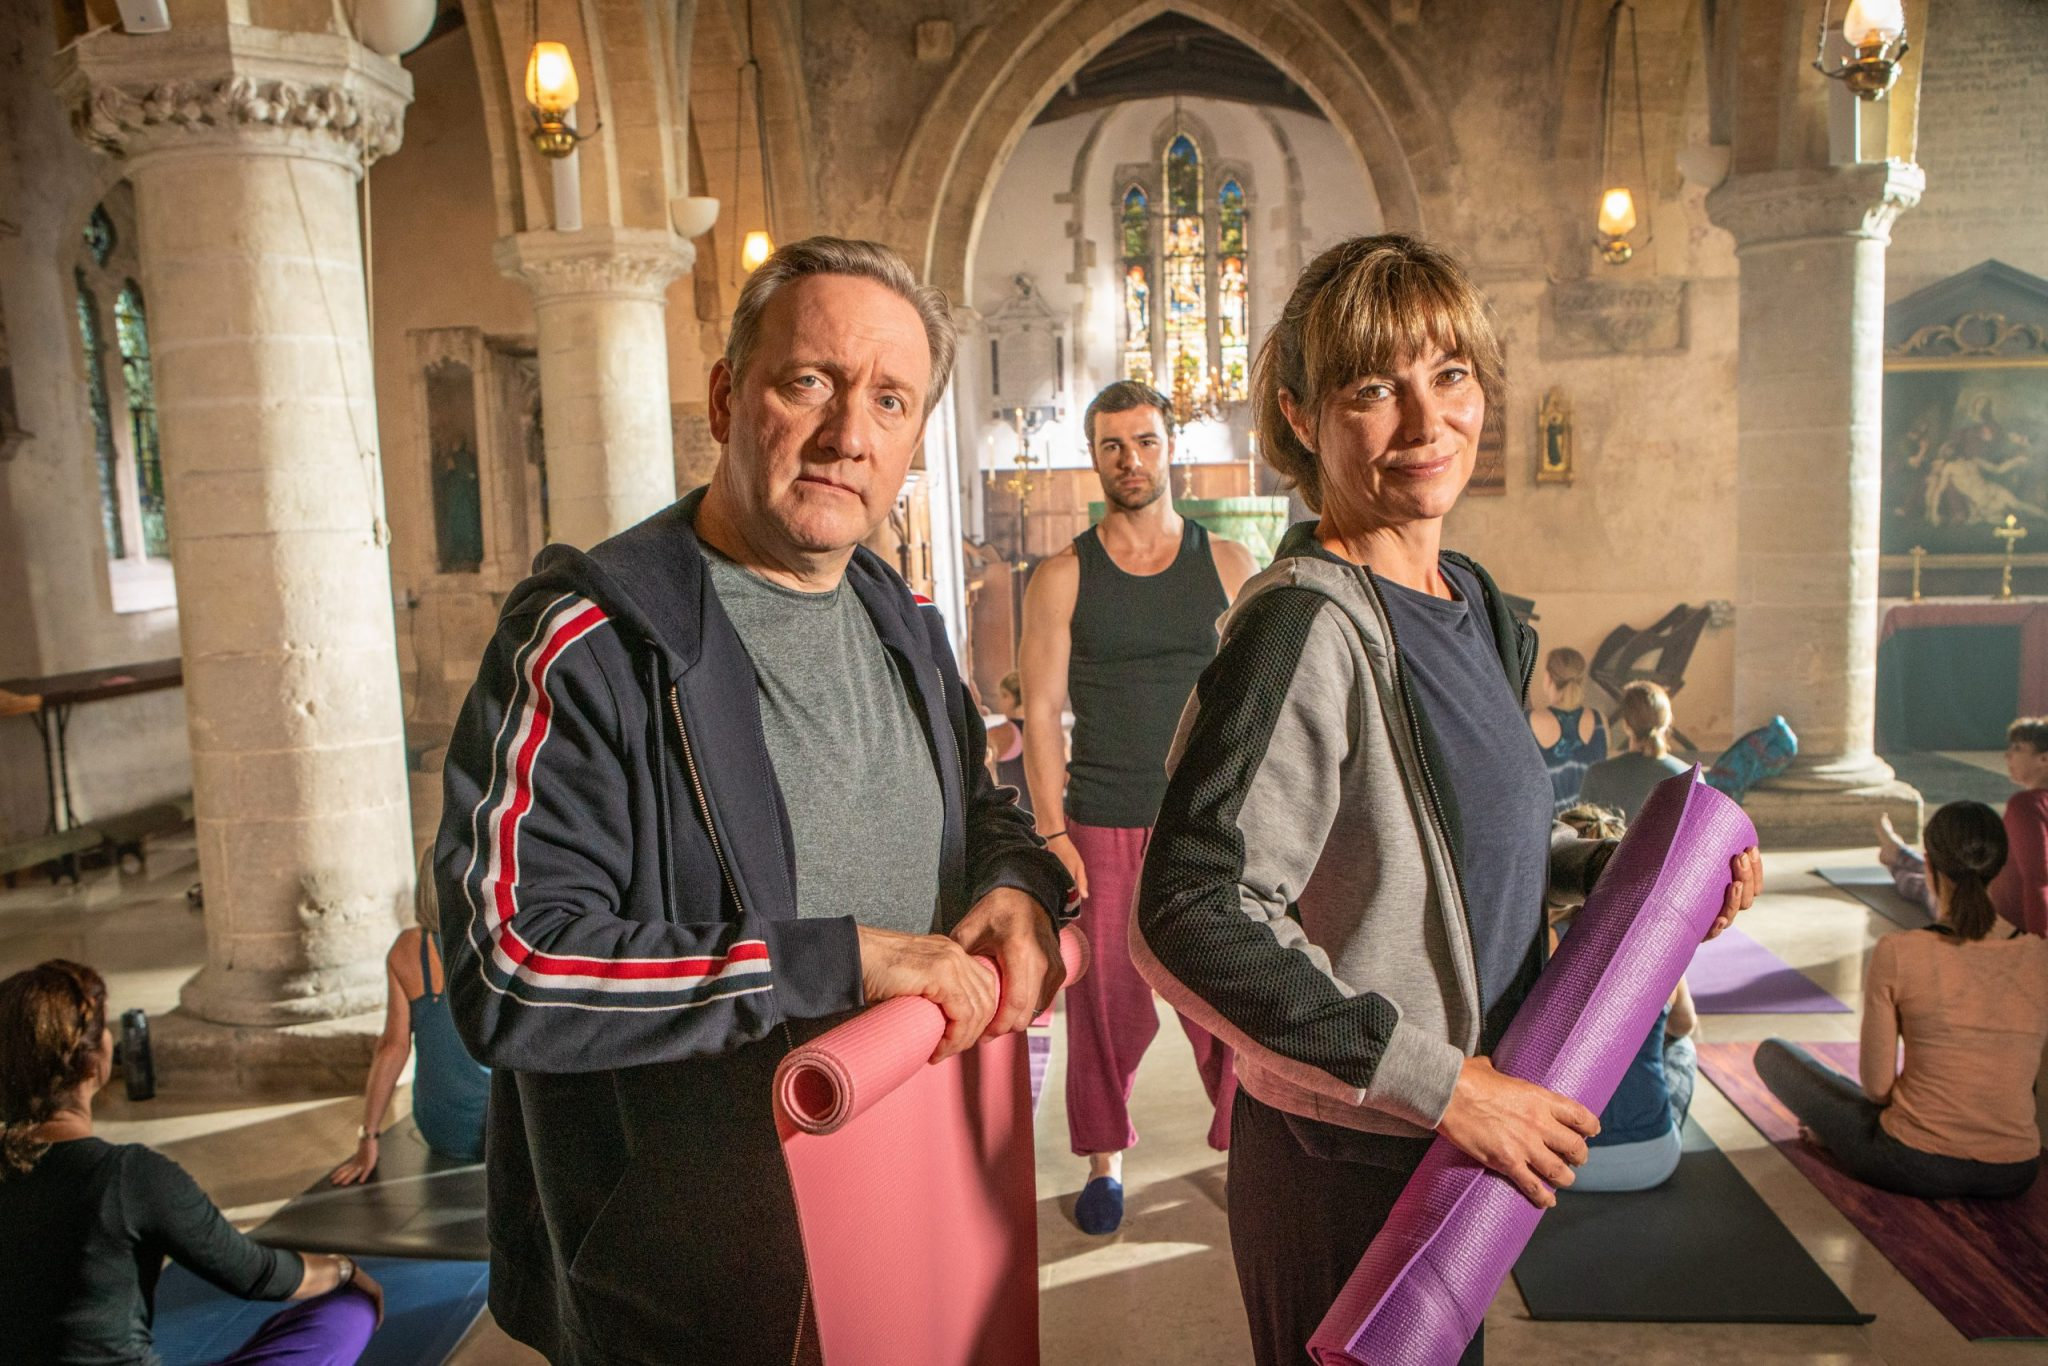 Midsomer Murders S21 on Acorn TV_Neil Dudgeon and Fiona Dolman_042